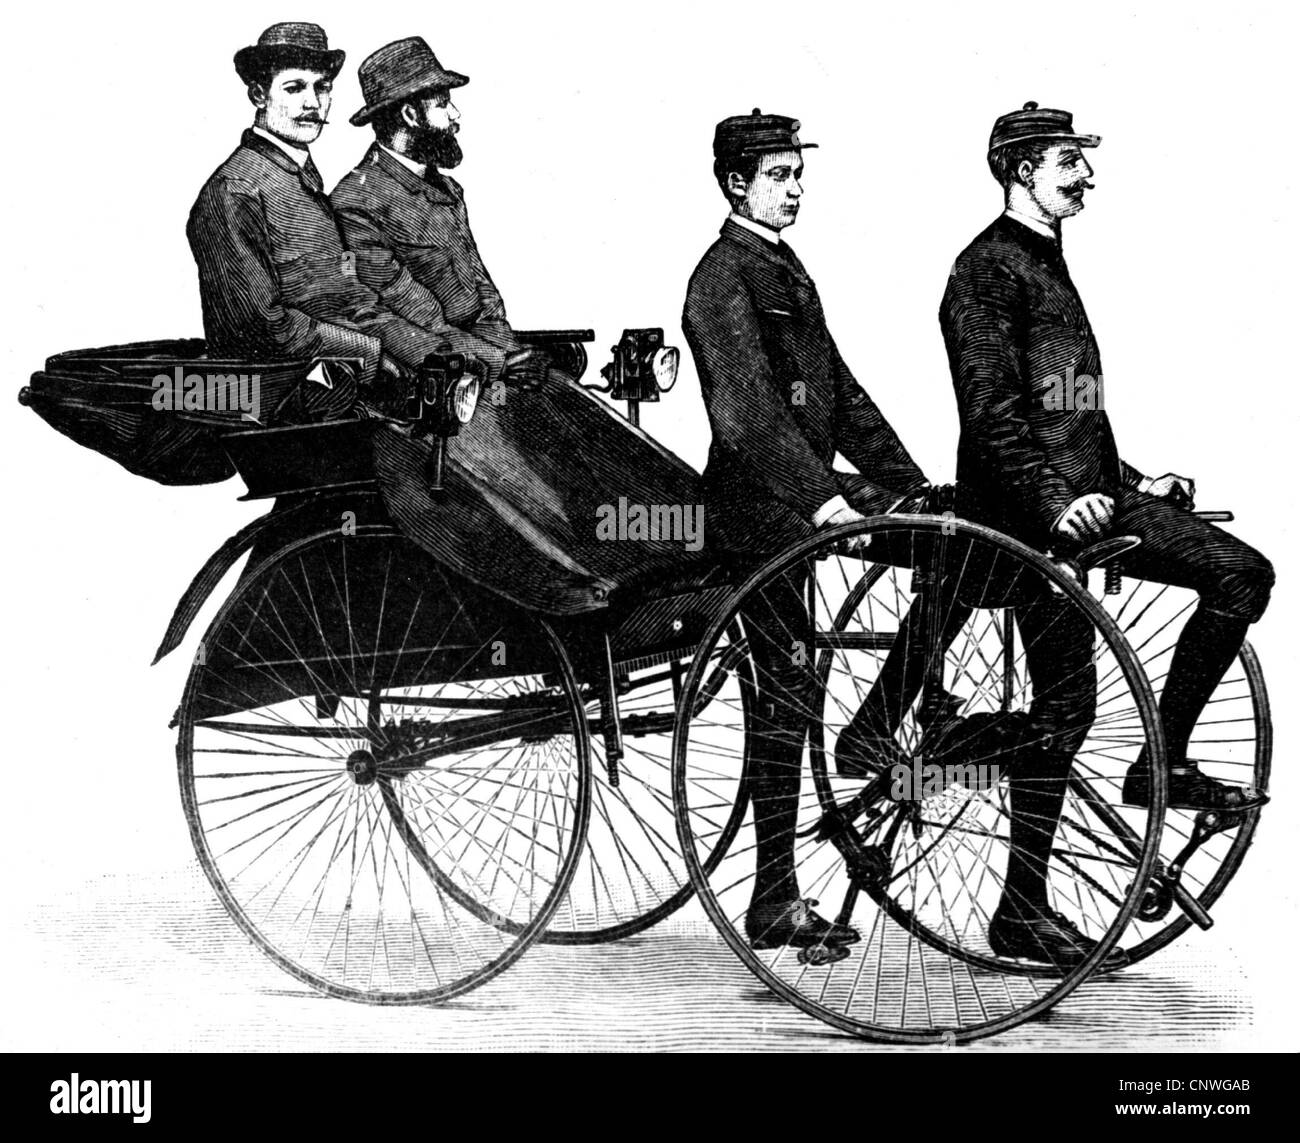 transport / transportation, bicycle, rickshaw, Velociped hackney carriage by Dumstrey & Jungk, Berlin, Germany, - Stock Image